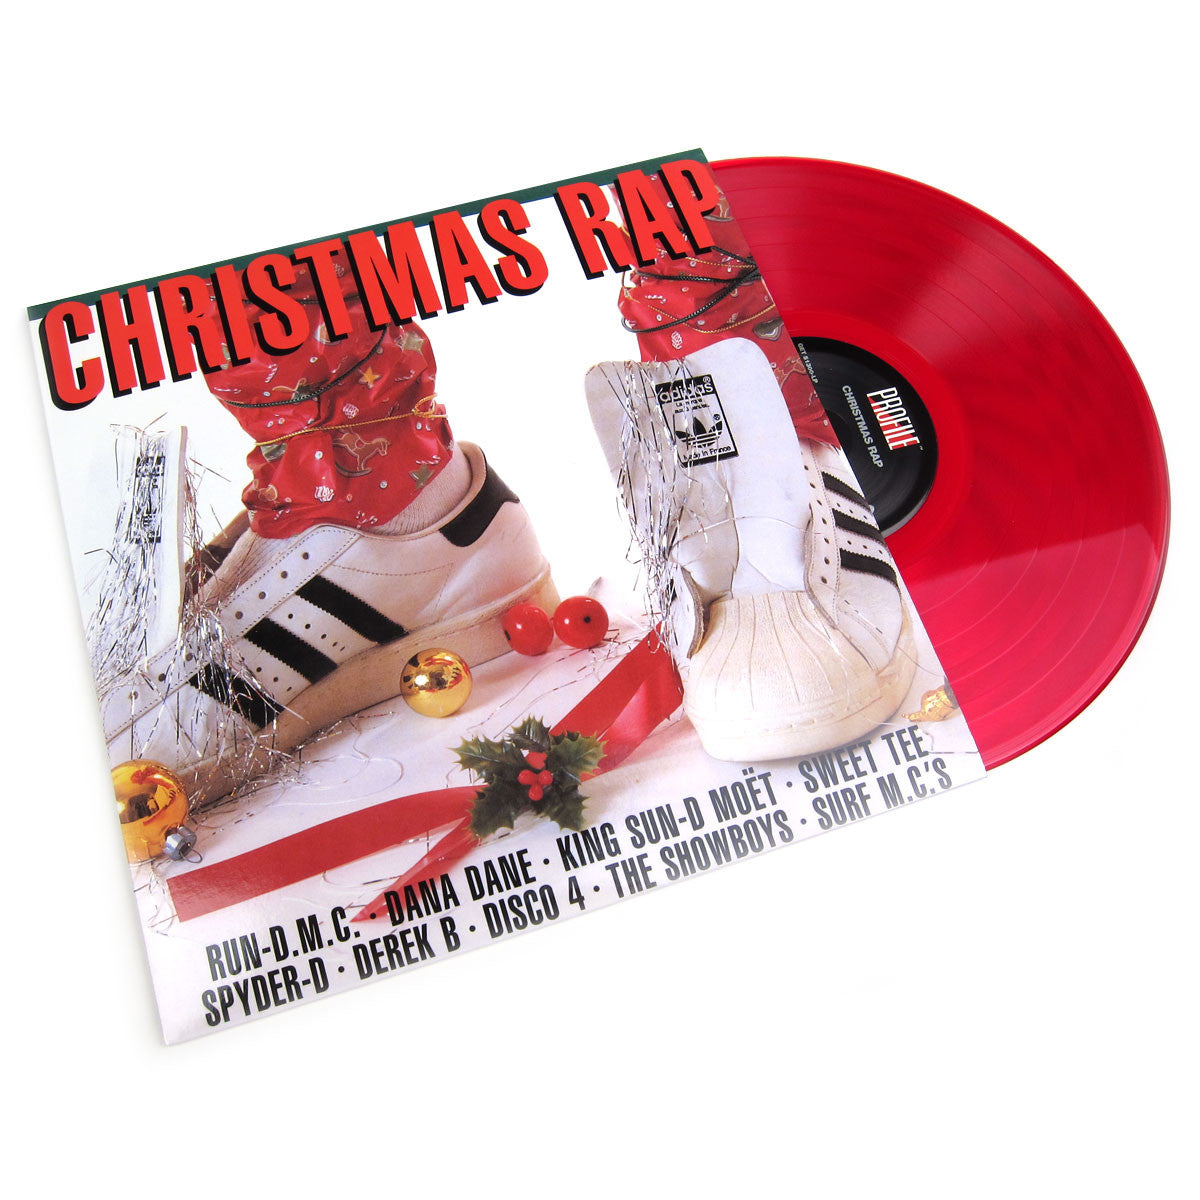 Profile Records: Christmas Rap (Colored Vinyl) Vinyl LP (Record Store Day)